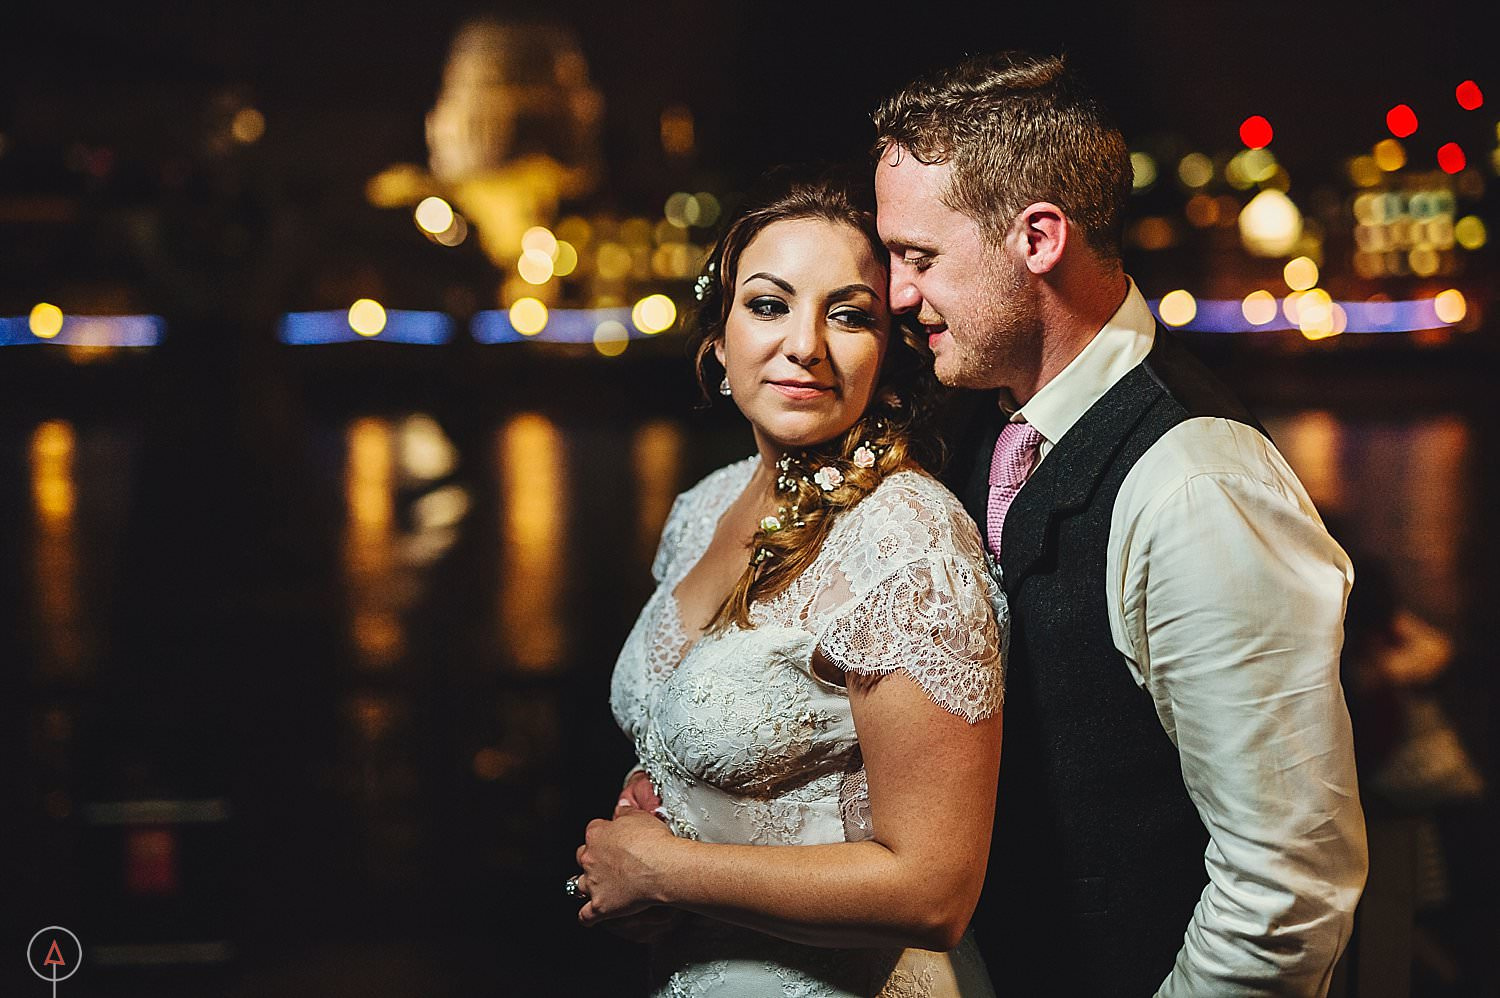 aga-tomaszek-wedding-photographer-cardiff_1220